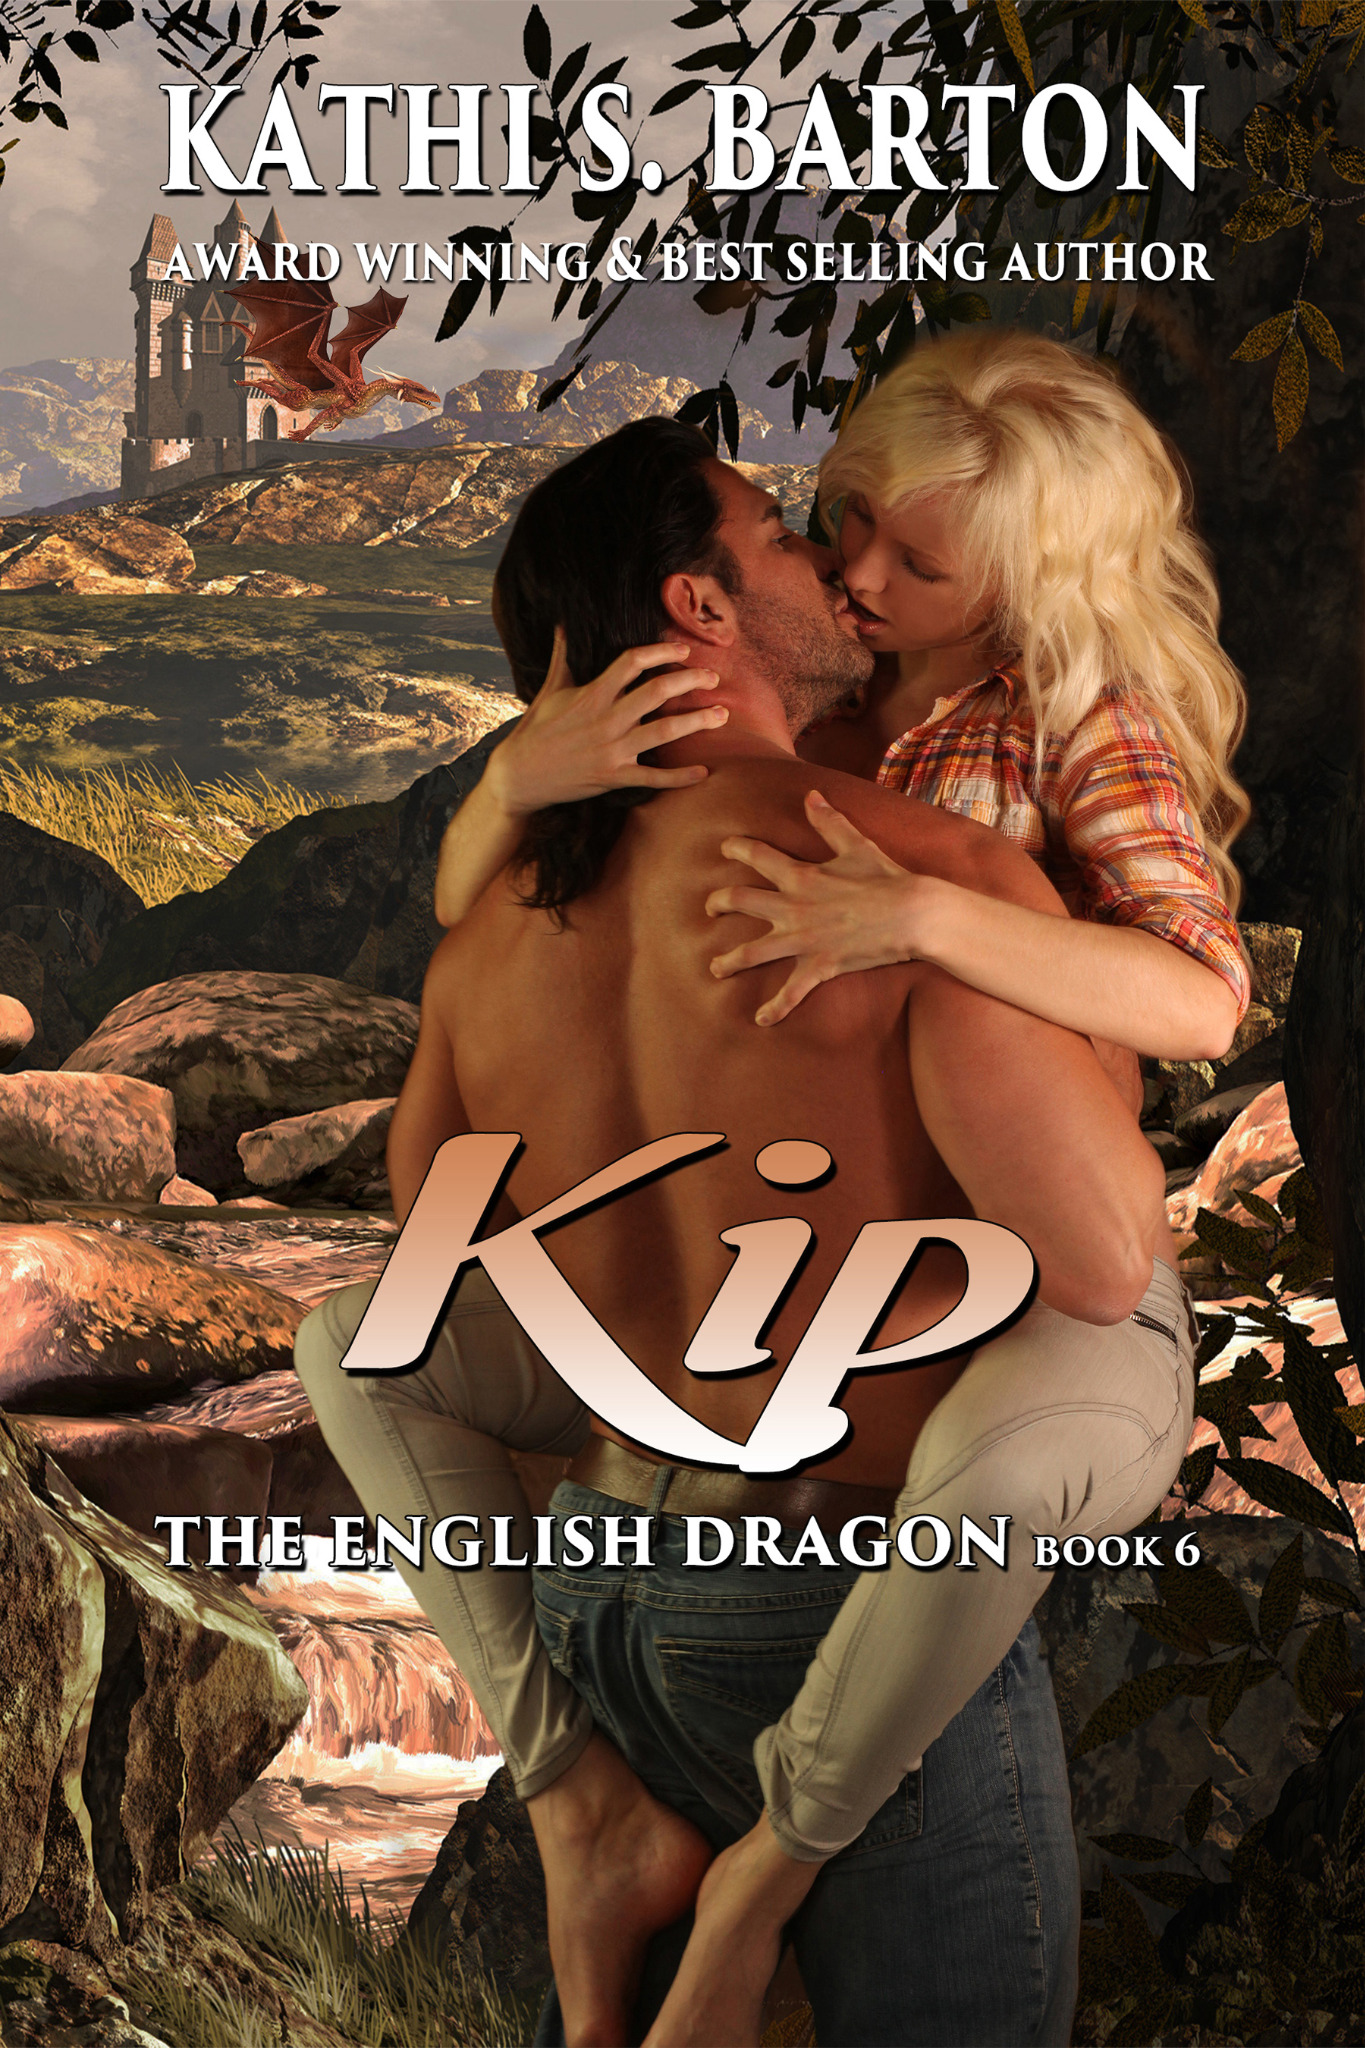 Kip - The English Dragon Book 6